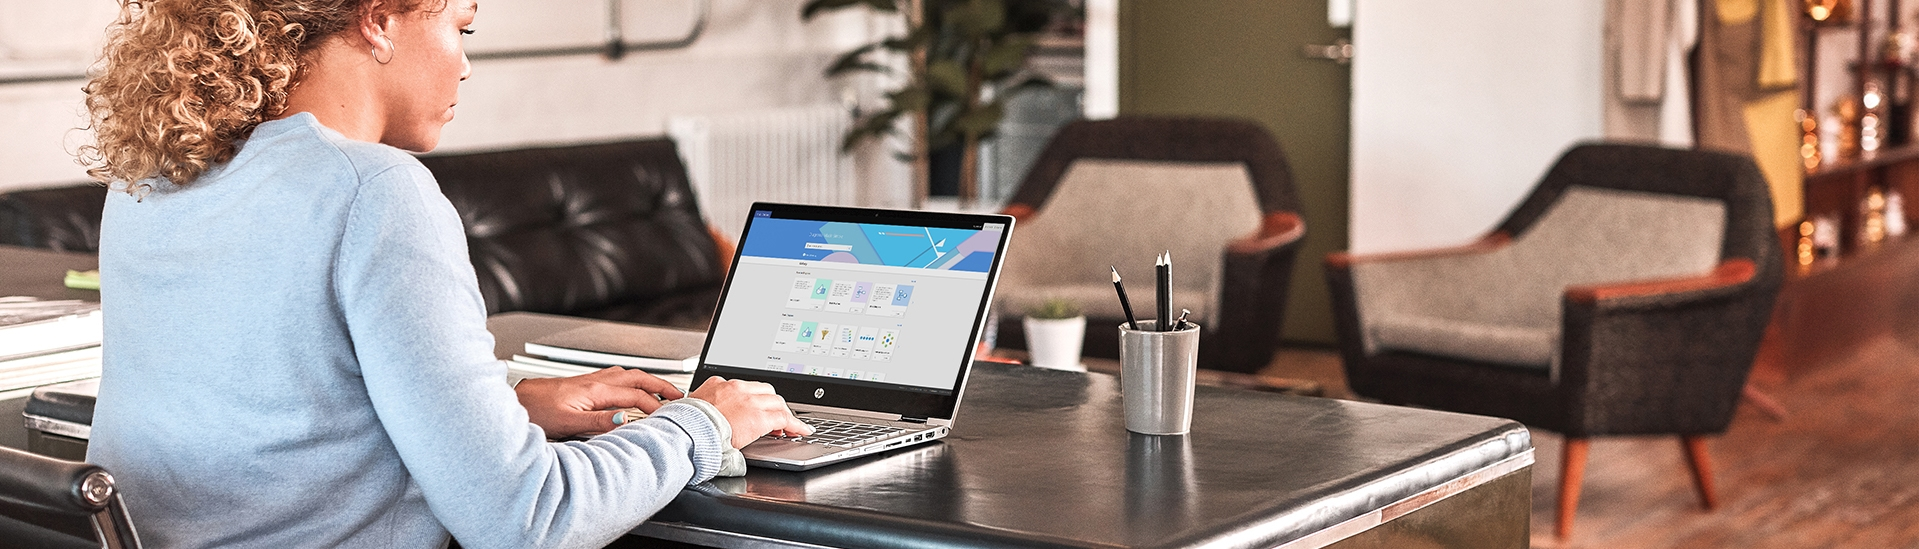 Photograph of a person working at desk and using a laptop